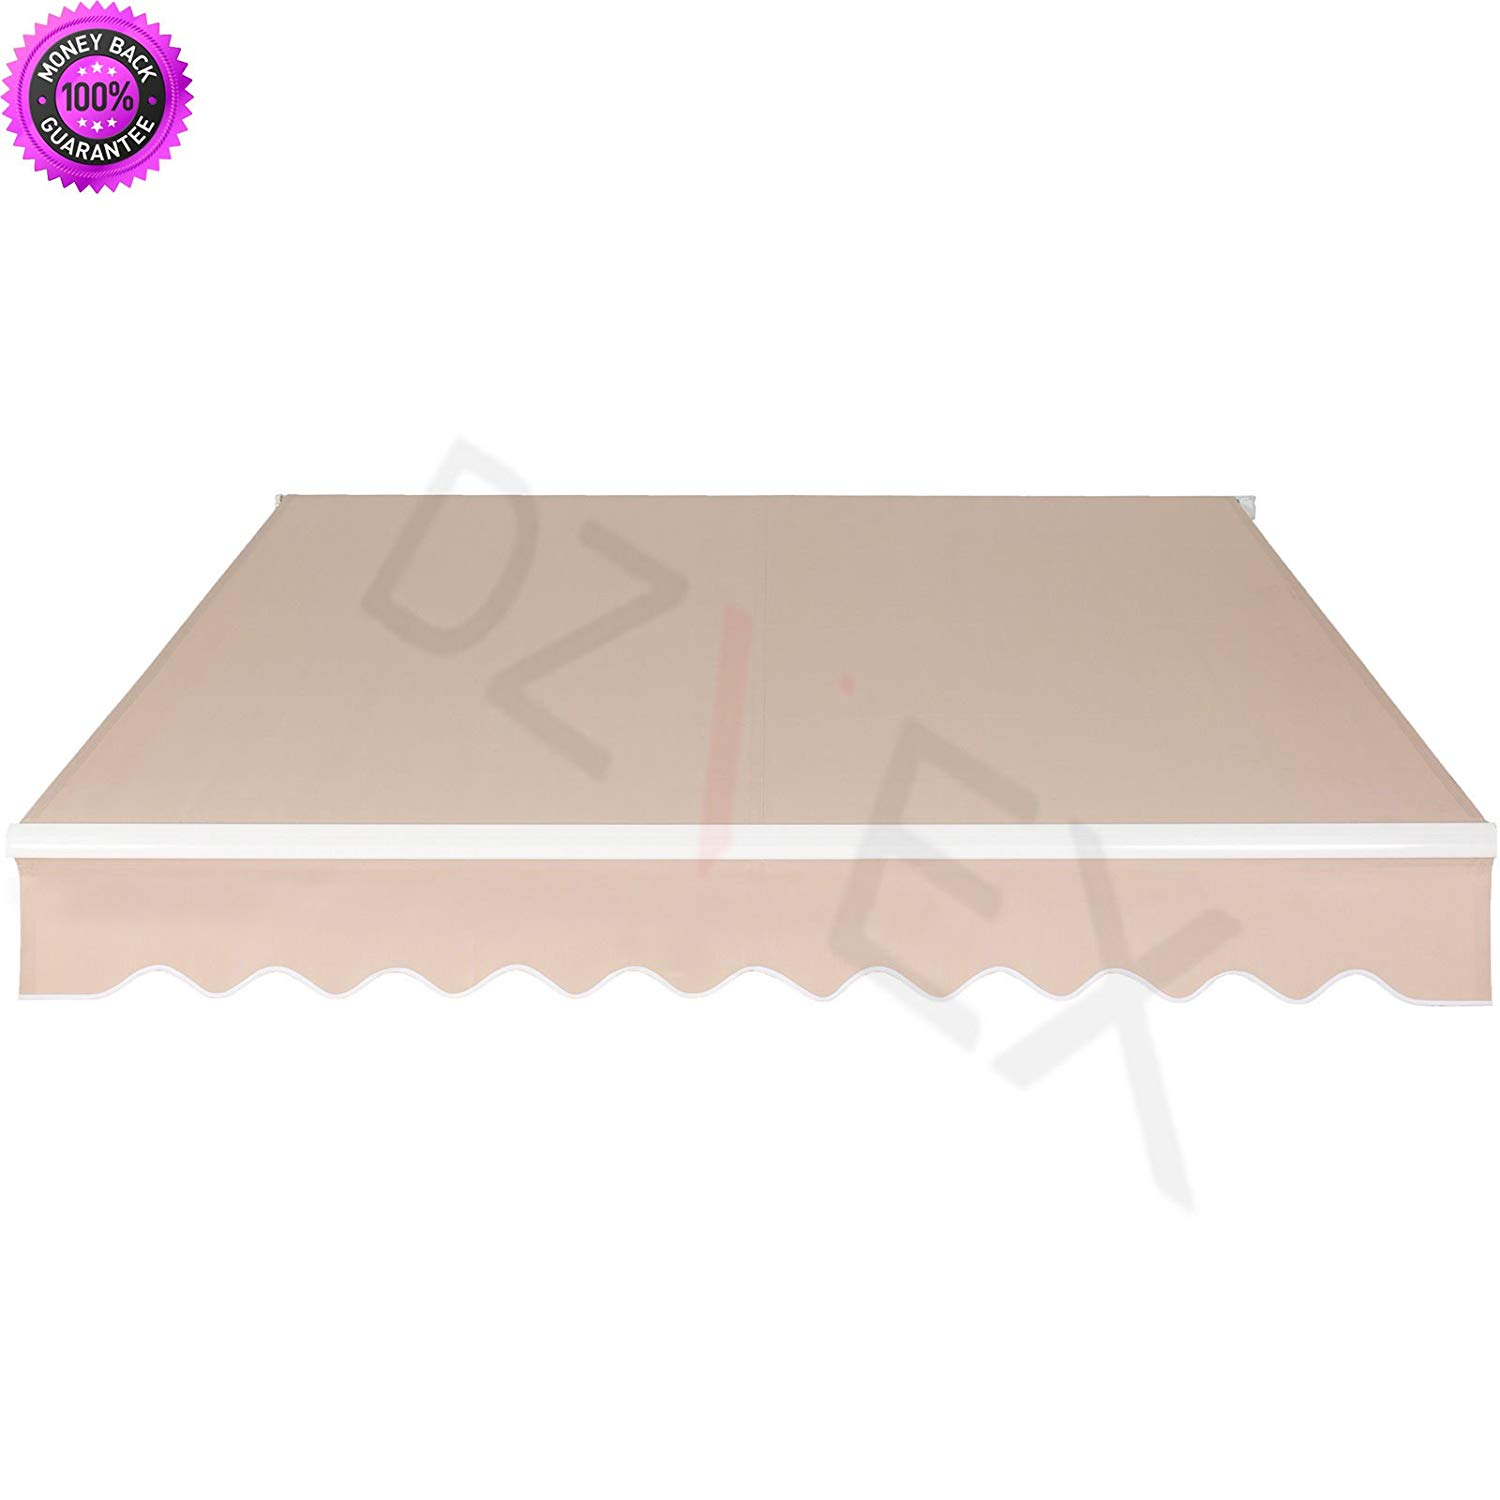 Dzvex_patio Manual Patio  Retractable Deck Awning Sunshade Shelter Canopy And